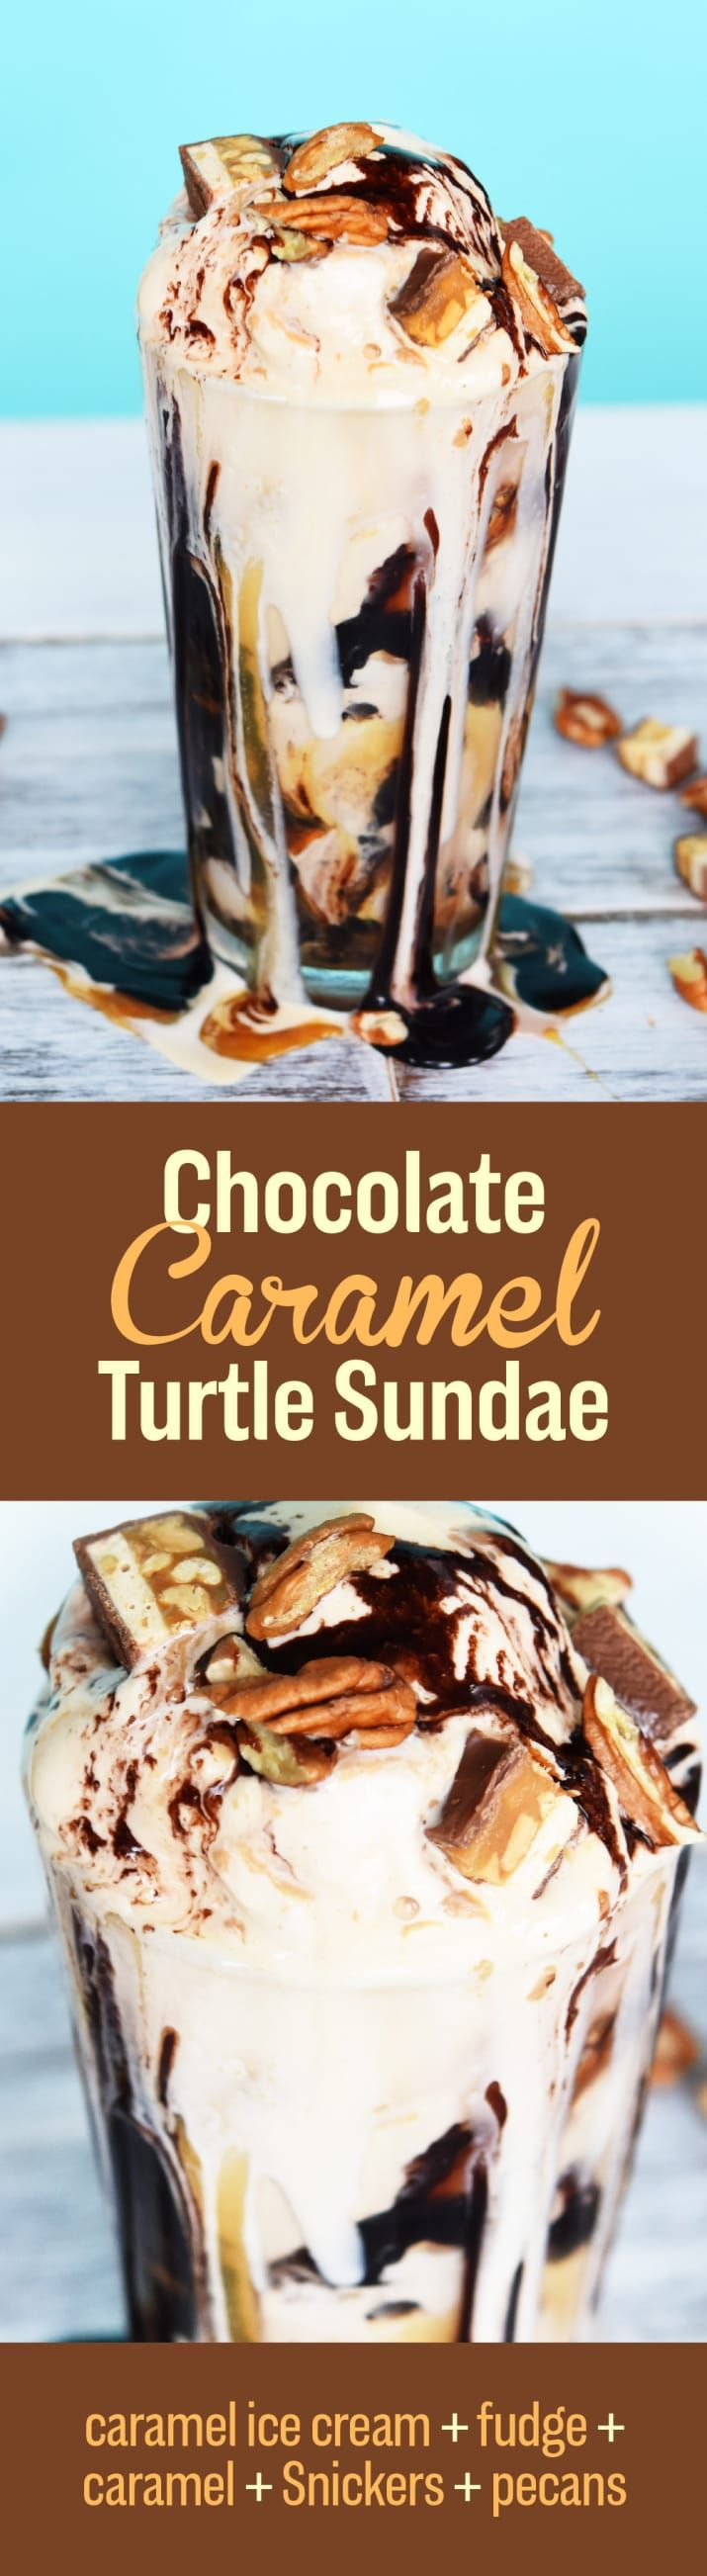 HOW TO: An ample amount of caramel and fudge sauce is key to this turtle-themed sundae. Spoon both between scoops of caramel ice cream, and add chopped Snickers and pecans to each layer. We used salted caramel ice cream, but you will #win if you can find a tub of Breyers' Snickers flavor. You can also swap the Snickers for actual chocolate and caramel turtles.